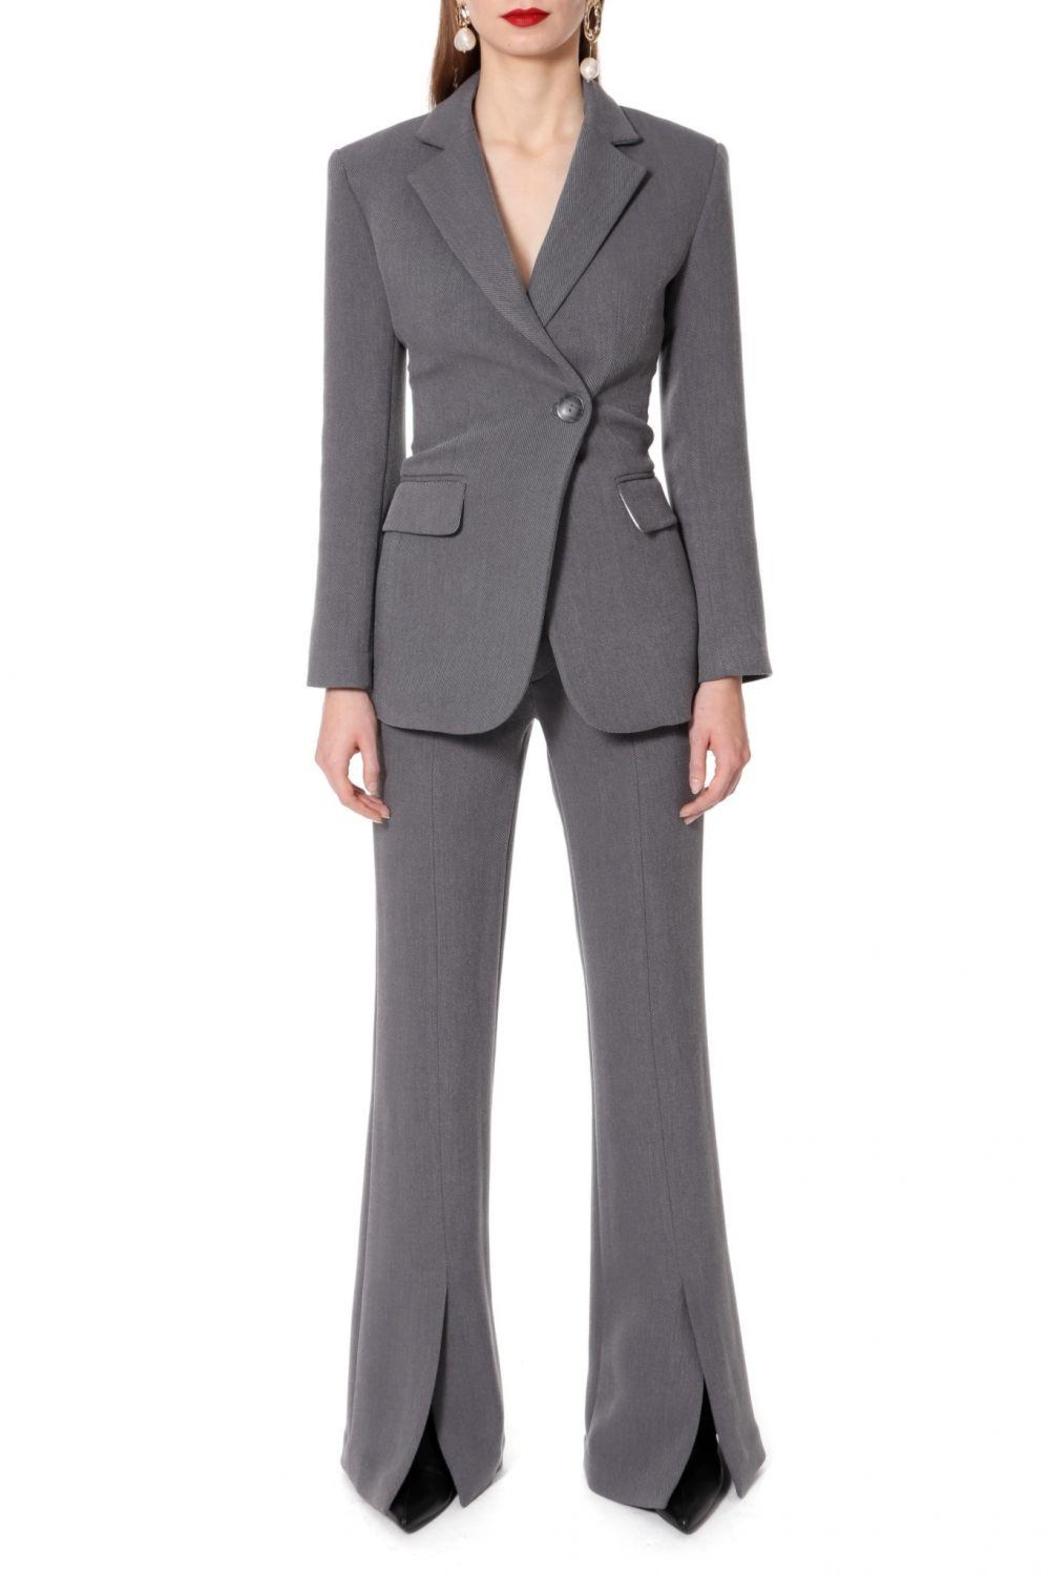 AGGI Pants Monica Baltic Grey - Height 165 - Side Cropped Image